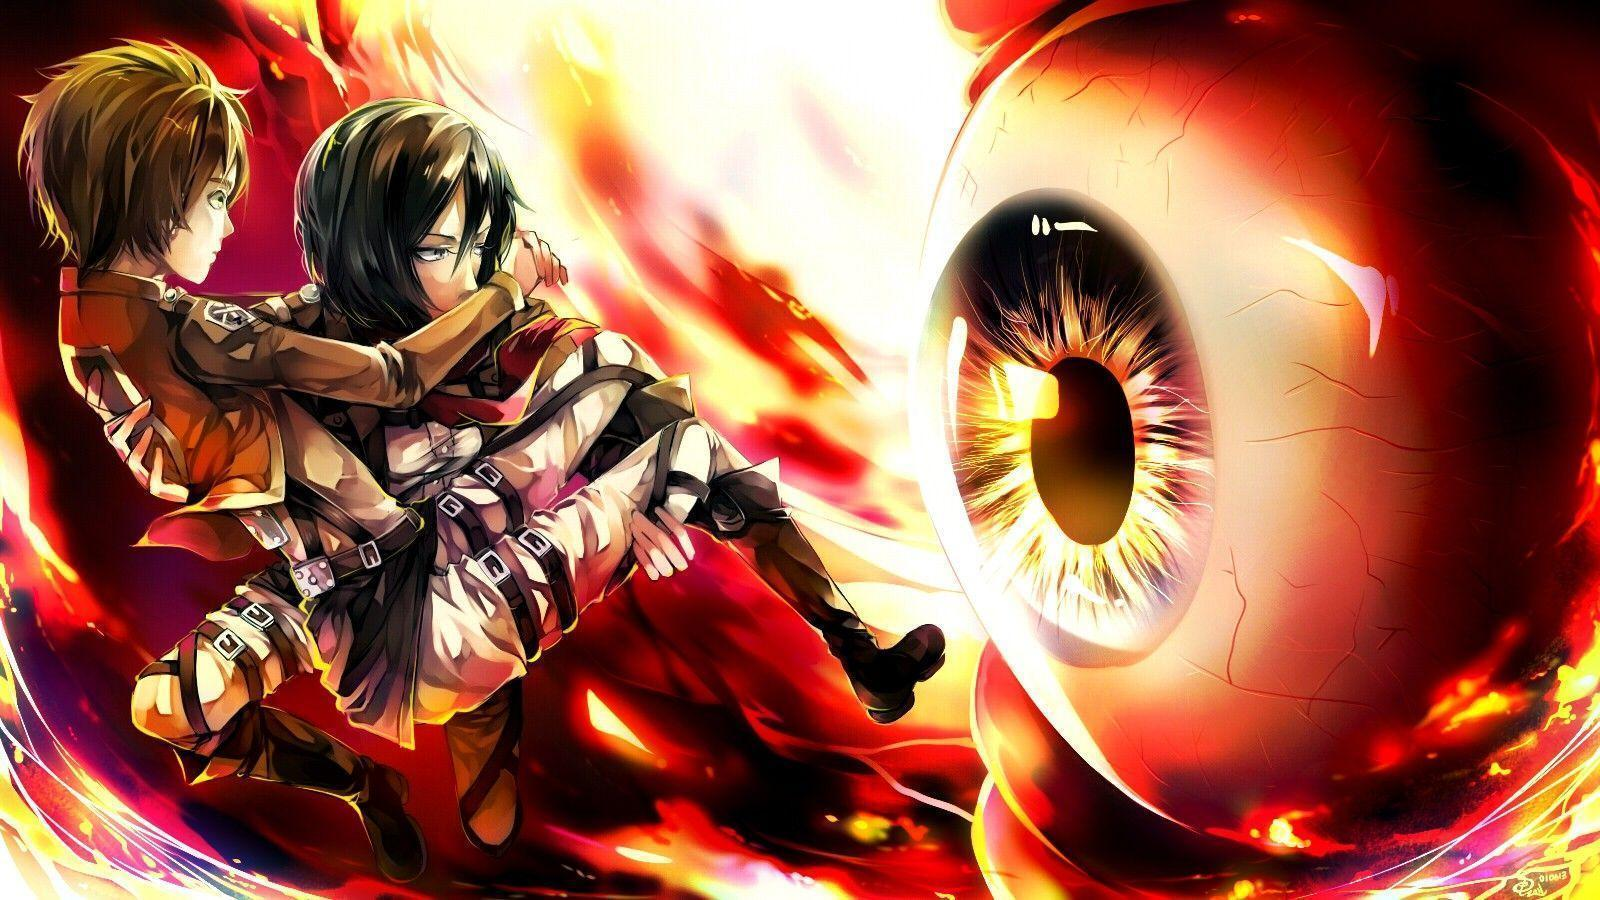 Anime Attack On Titan Eren Yeager Mikasa Ackerman Wallpapers